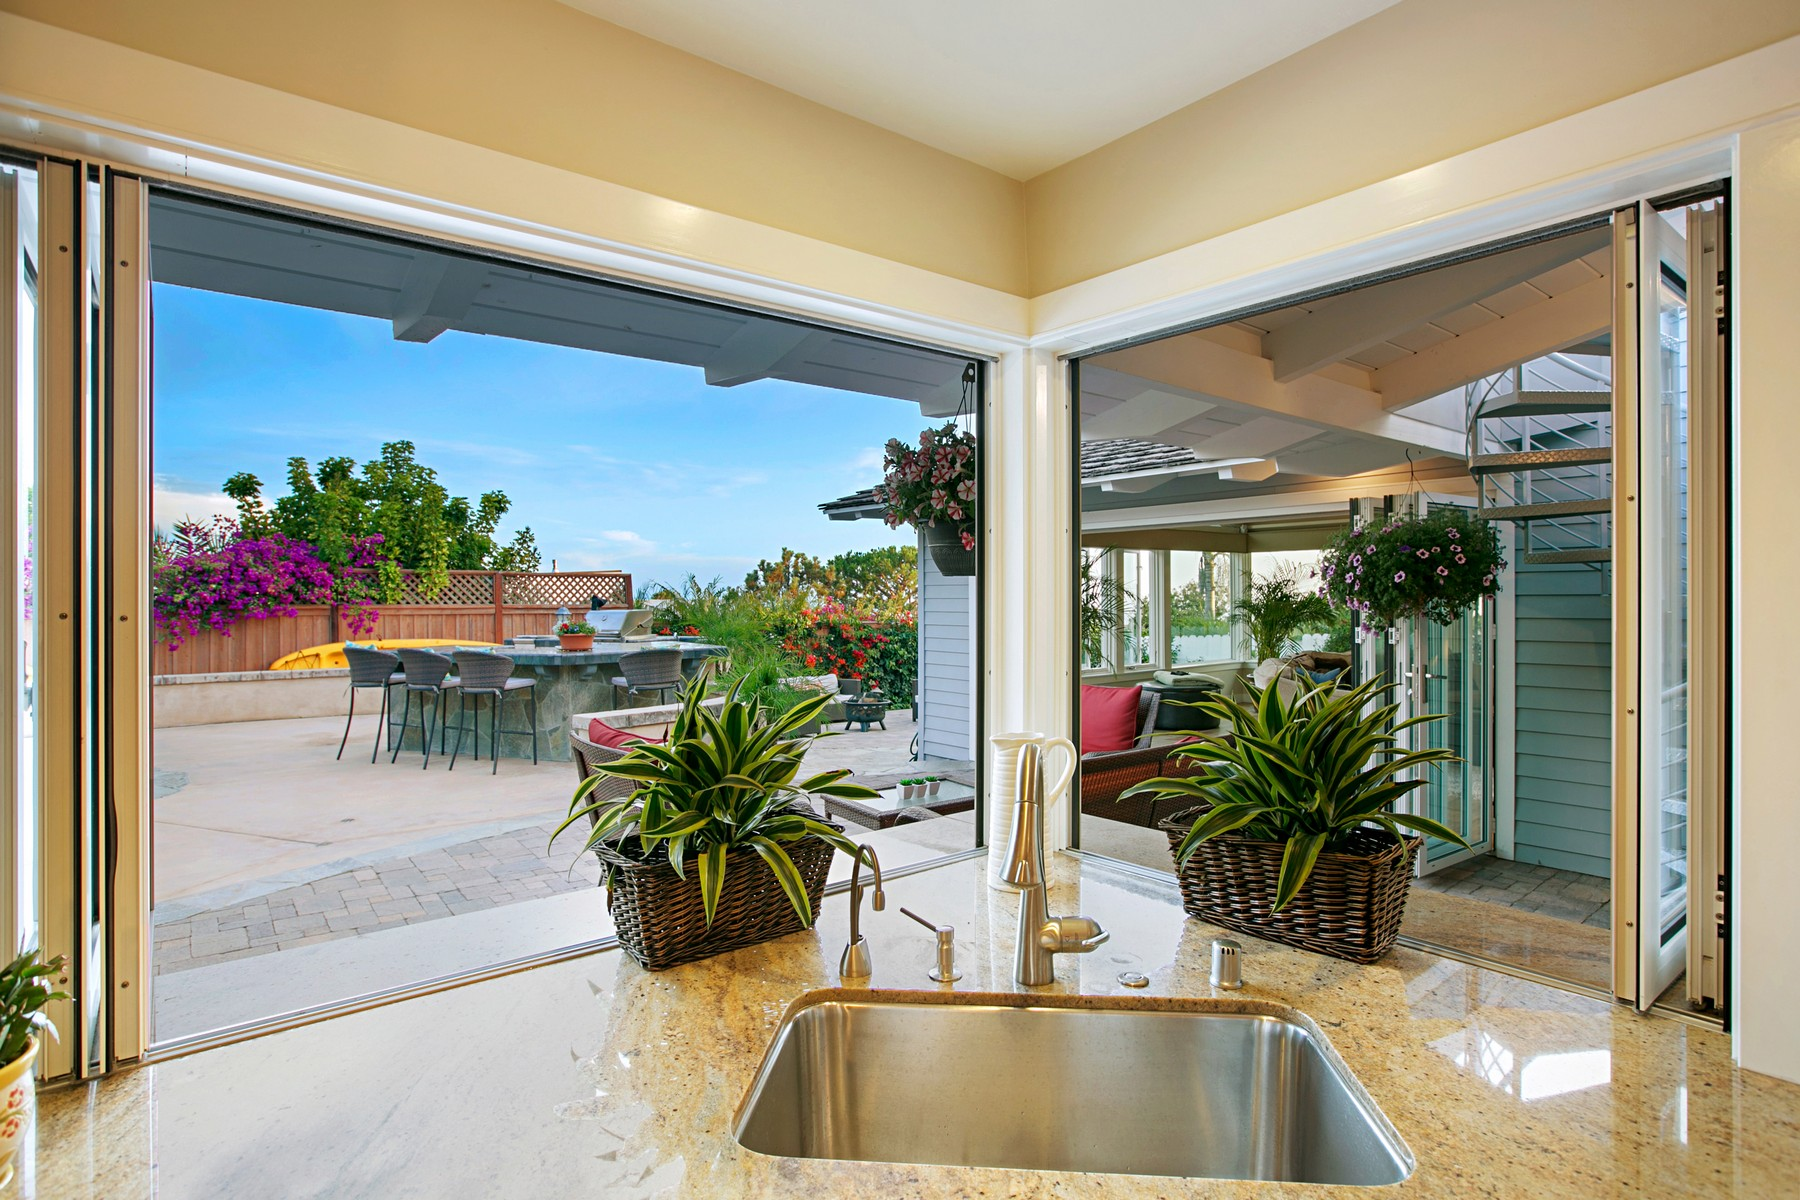 Additional photo for property listing at 1035 Newkirk Drive  La Jolla, California 92037 United States